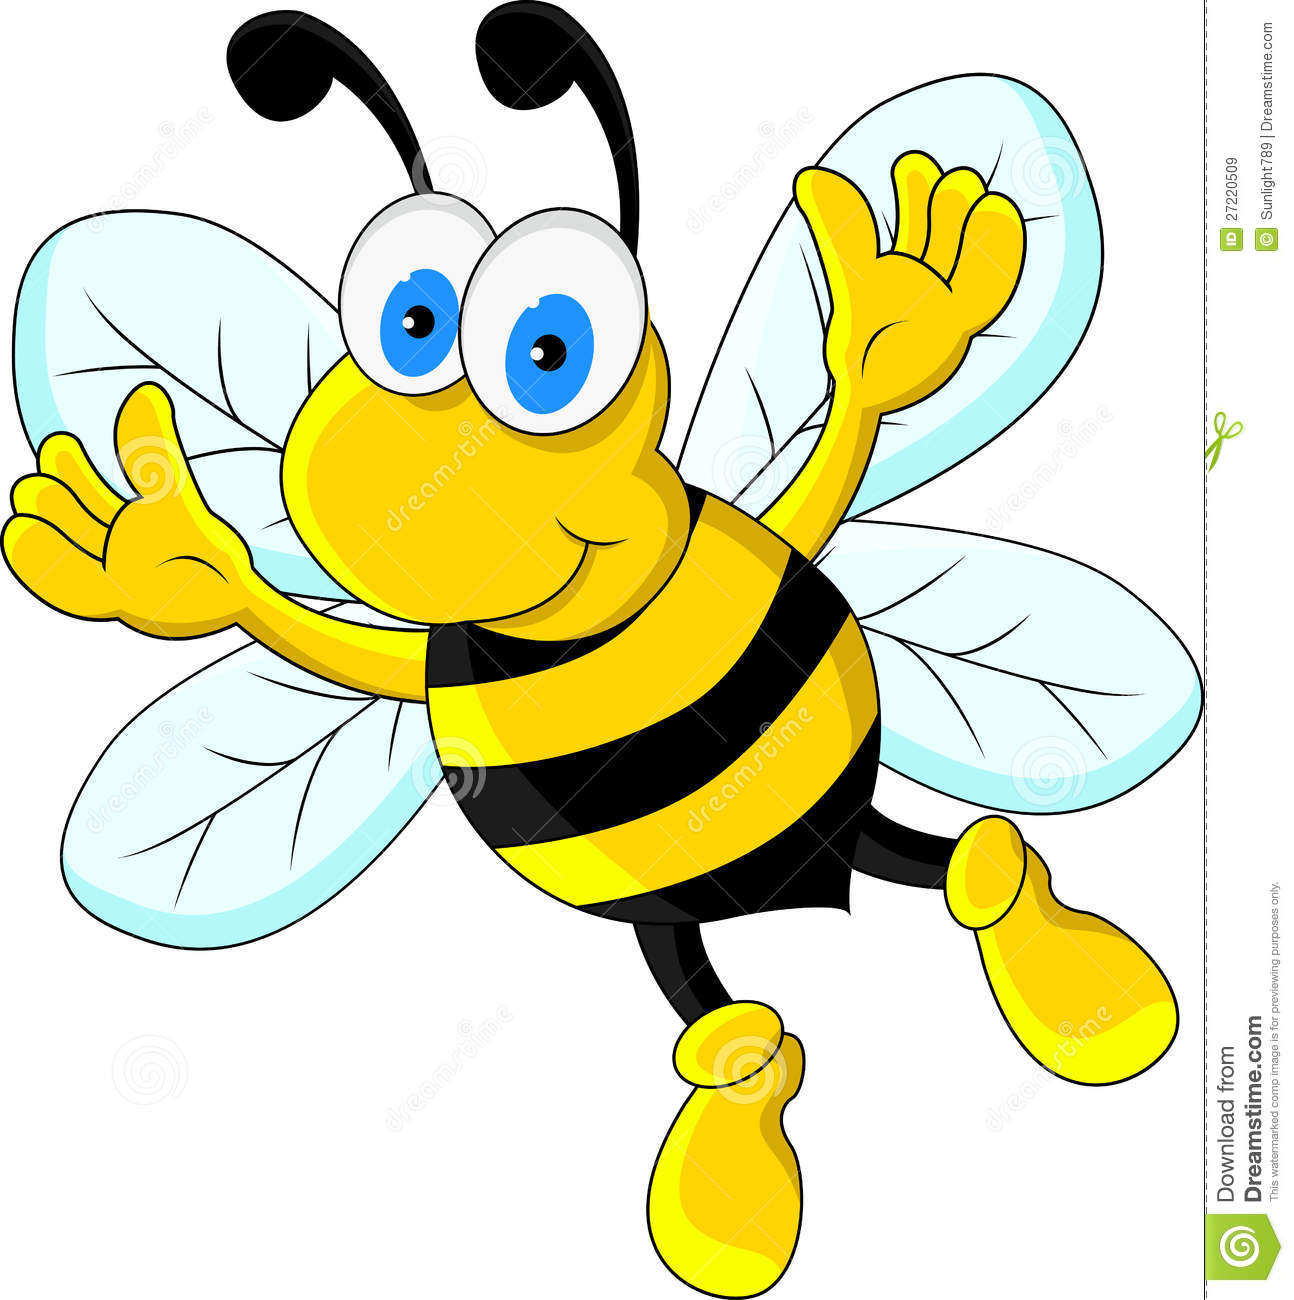 Funny Bee Cartoon Character Royalty Free Stock Images - Image ...